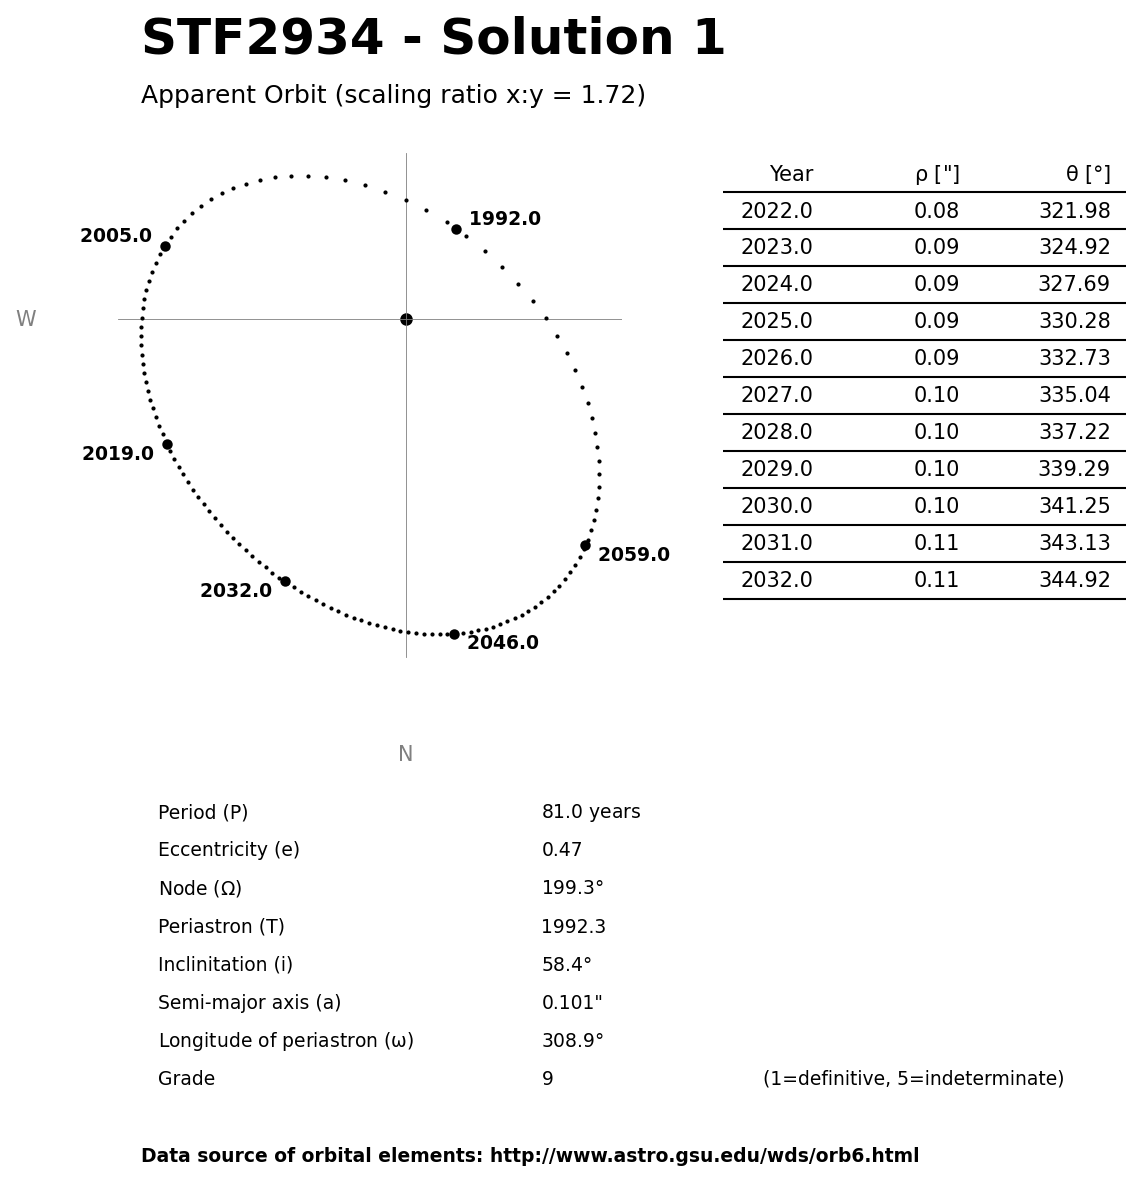 ../images/binary-star-orbits/STF2934-orbit-solution-1.jpg